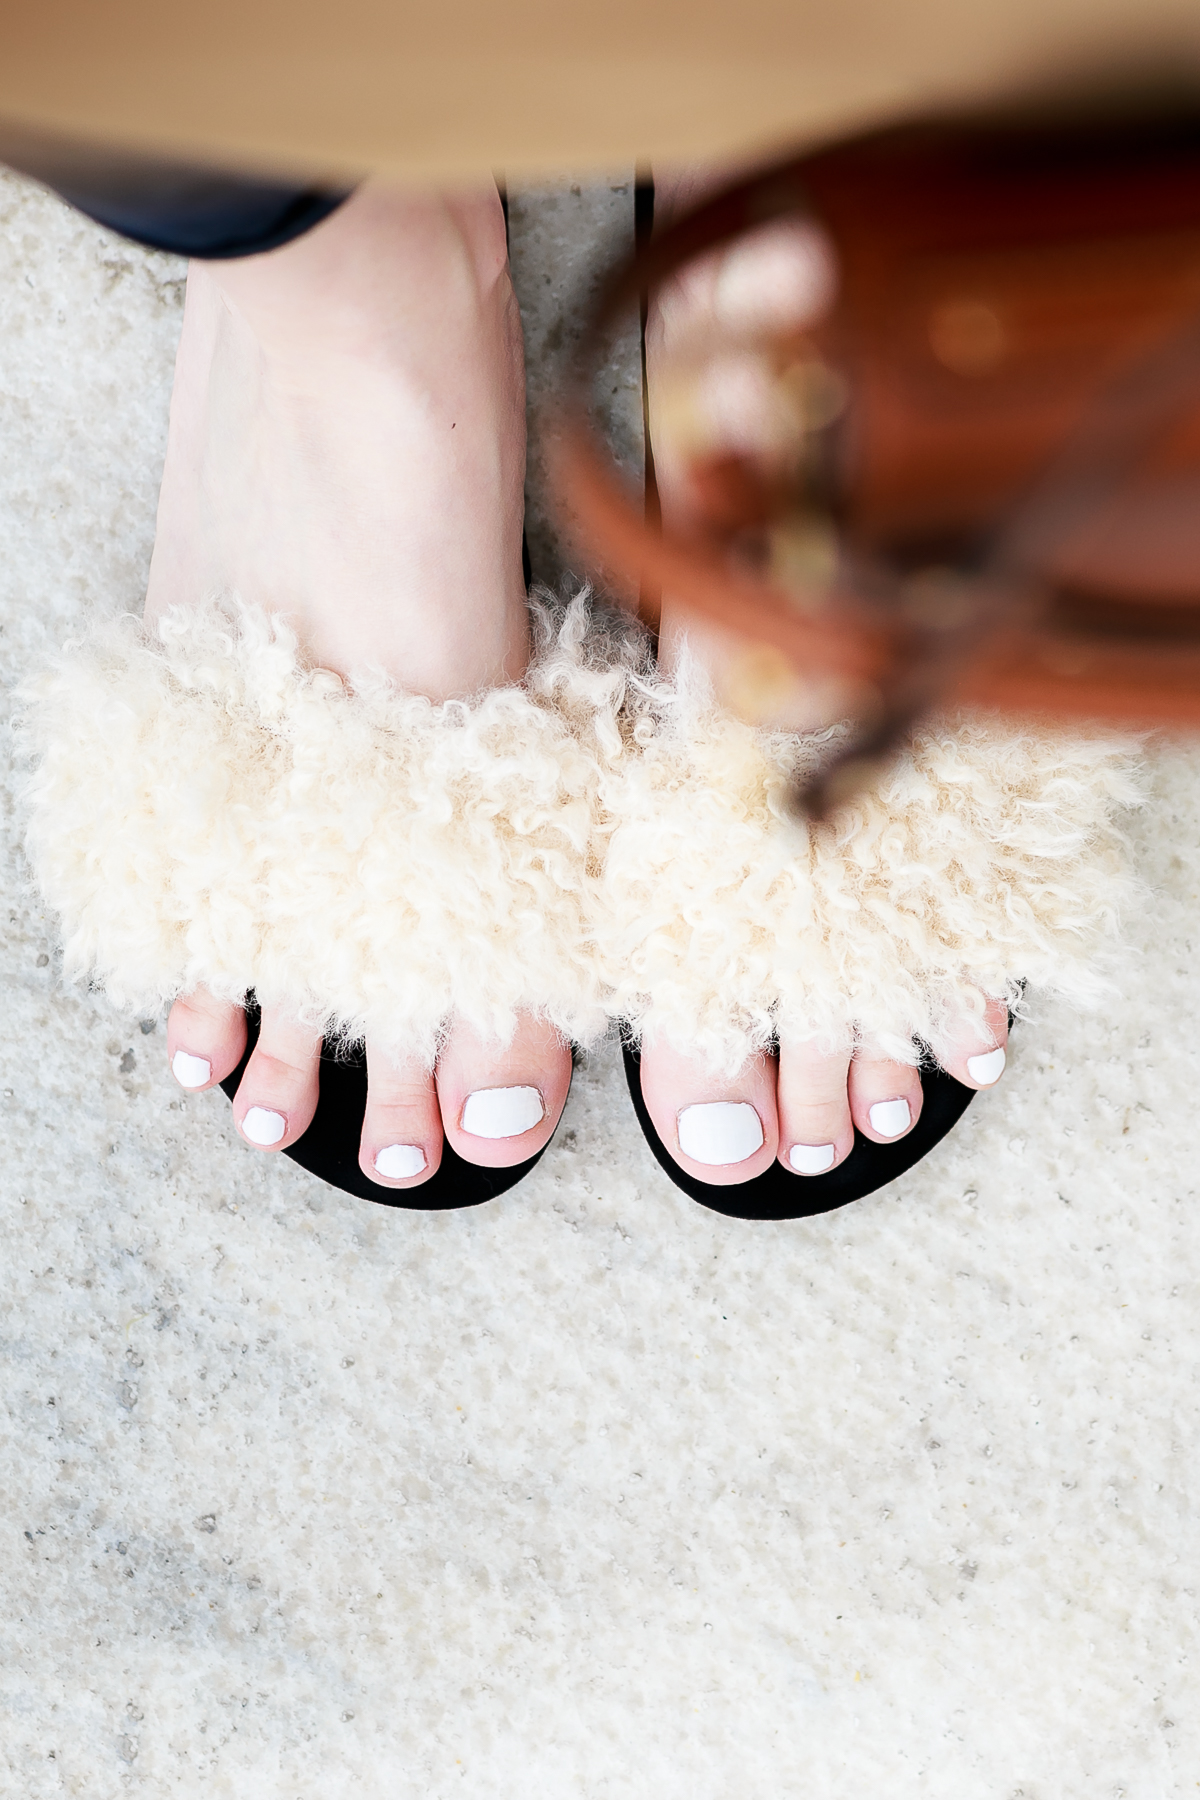 How to Get Out of Monochrome Rut feat. Chloe Nile Bag and Zara Furry Slides | EdgyCuts